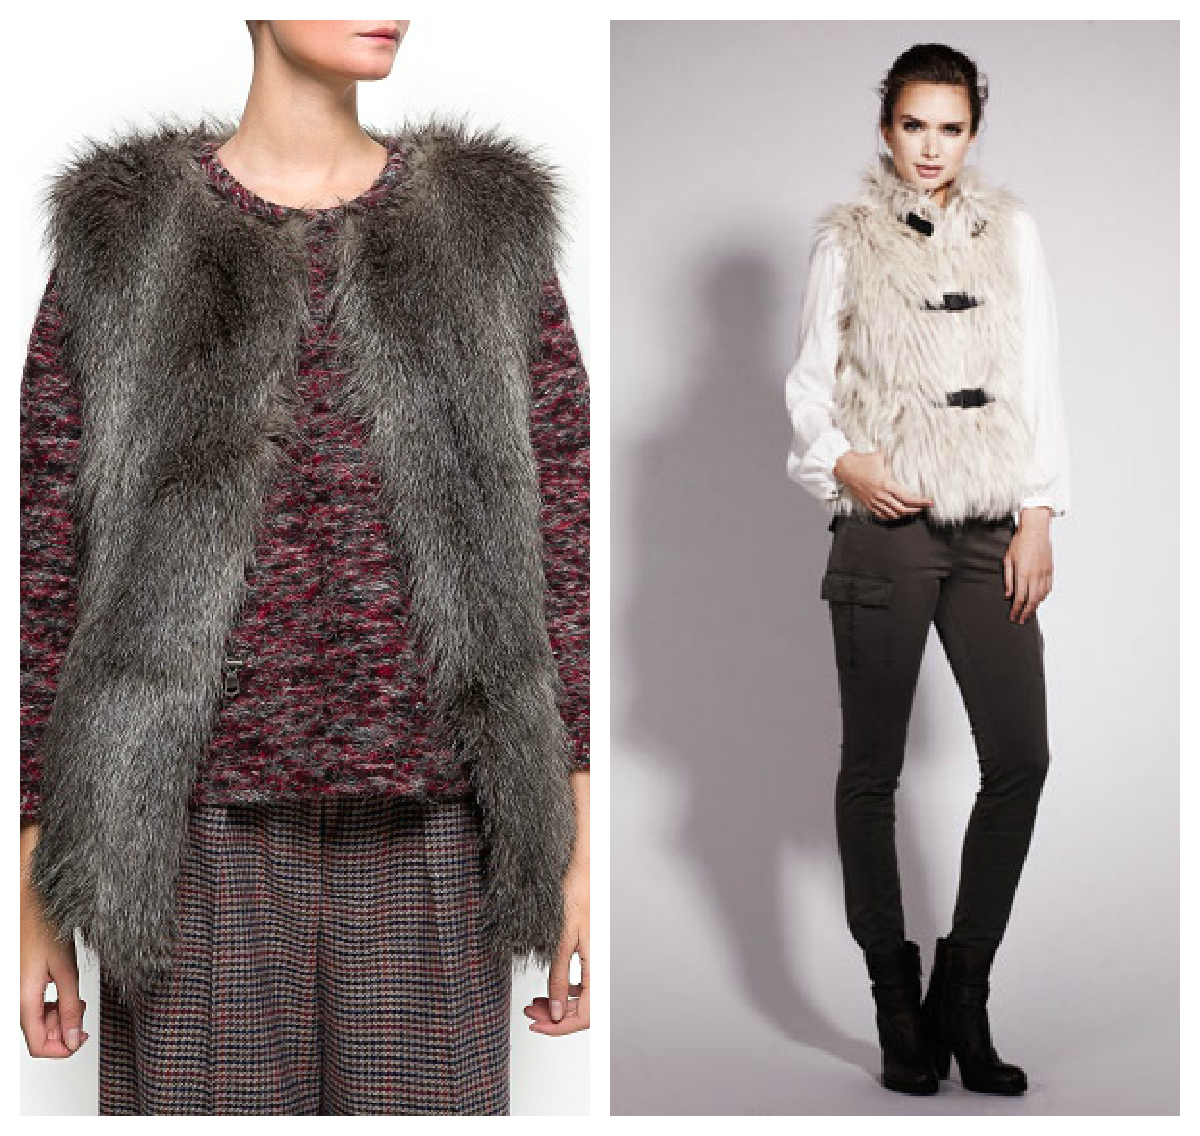 Welcome to sofltappreciate.tk, the UK's number one retailer for fashion fur gilets, rabbit fur jackets and stunning fur accessories. Fur gilets are the epitome of style and elegance, and can be worn-year round to create a chic and sophisticated look.